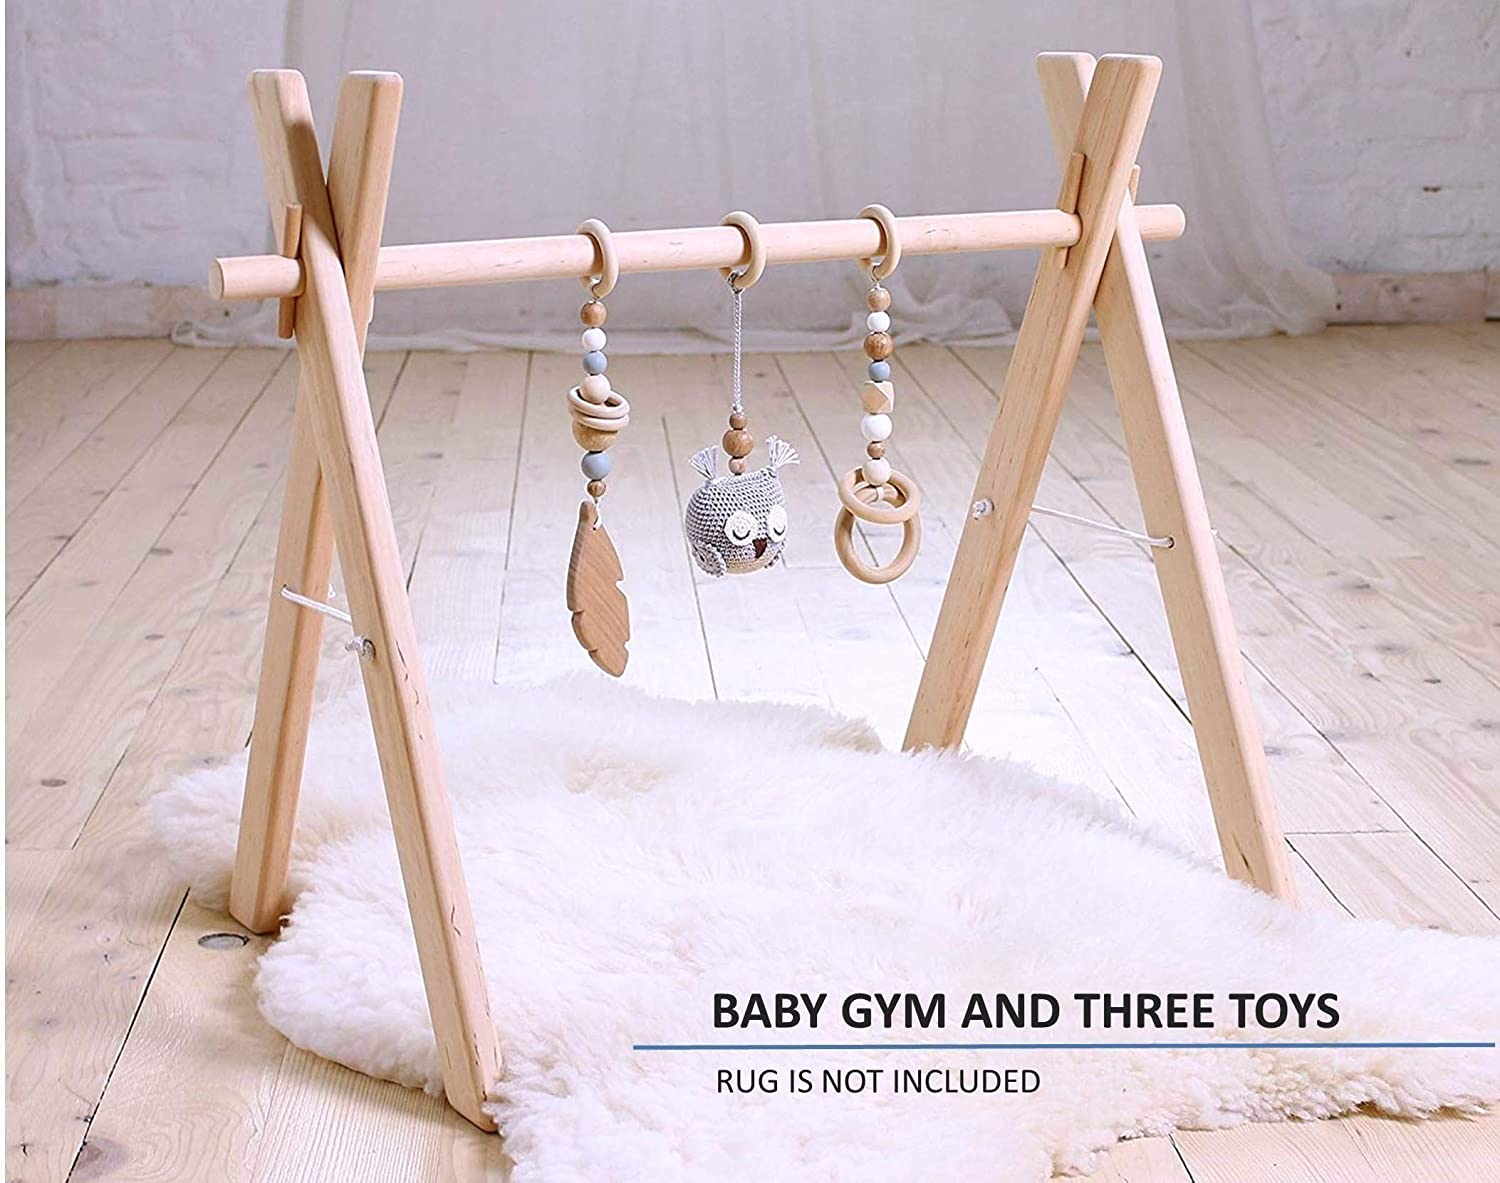 Baby gym wood with three mobiles: crochet owl, wooden feather, ring. Infant activity center, wooden play gym. Scandinavian. Woodland. Forest. Birds. Handmade in Eastern Europe. Gray & tan.